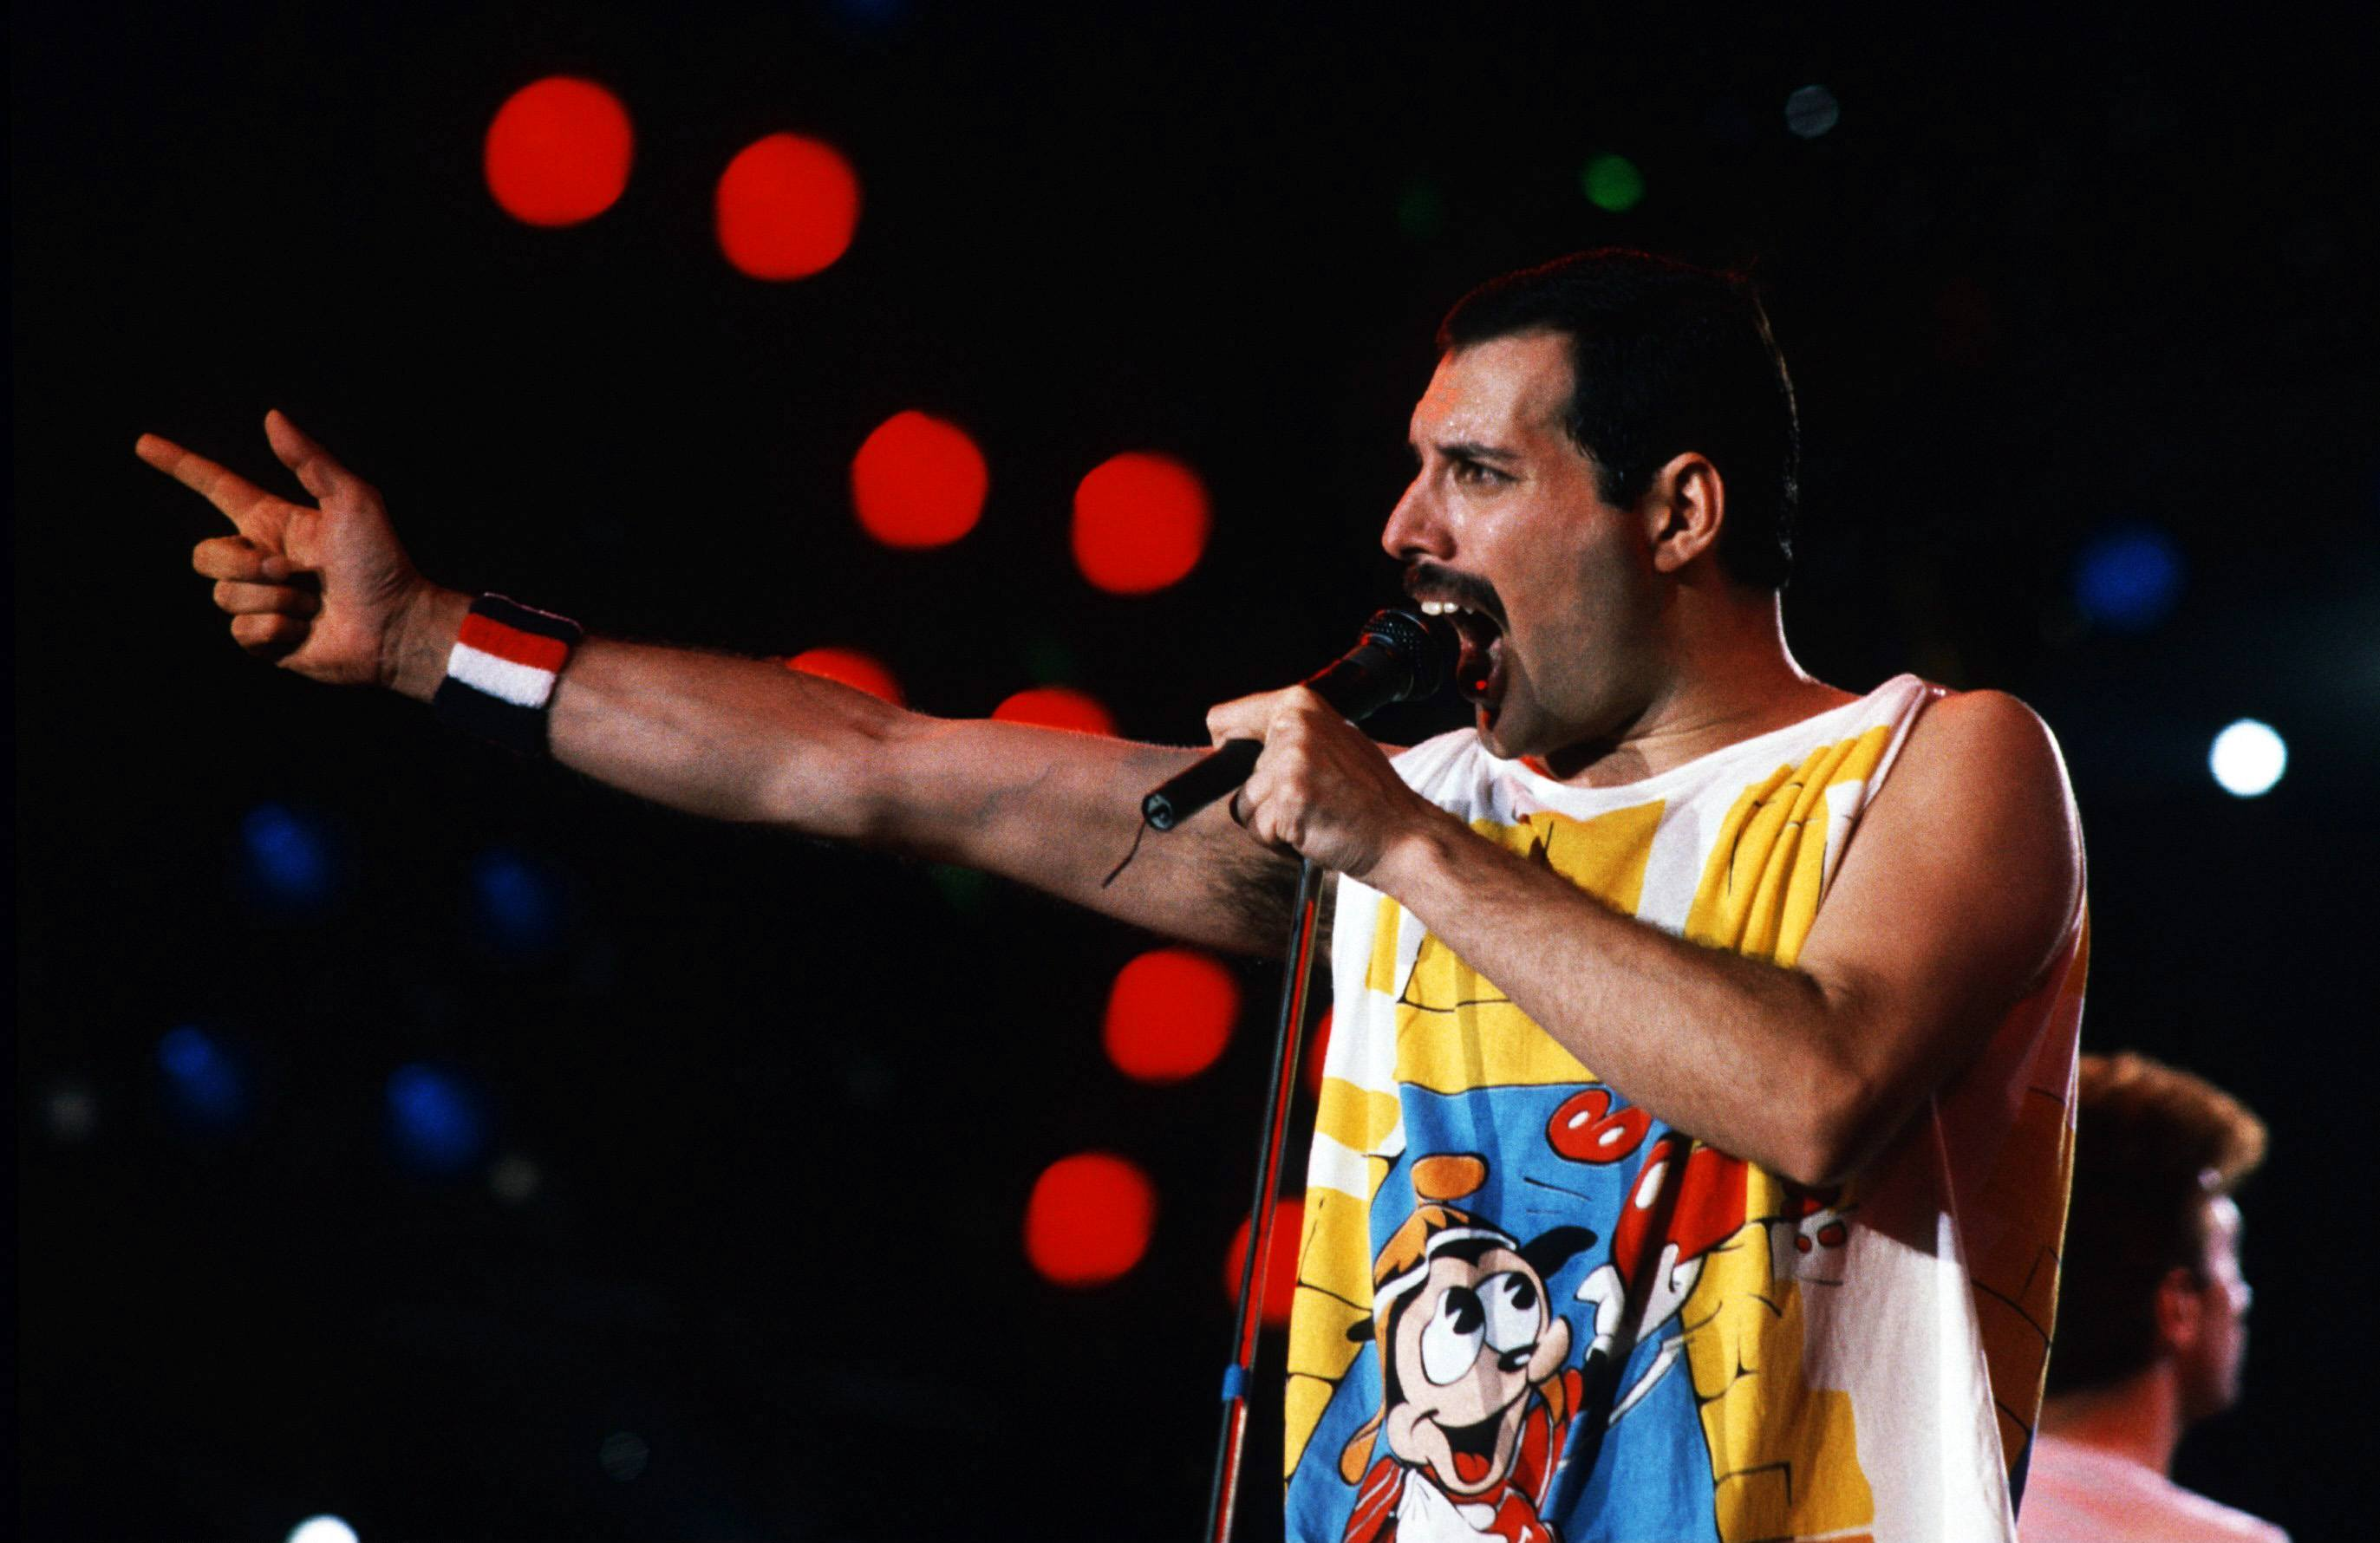 Freddie Mercury Queen Start You Up 30 Things You Didn't Know About Freddie Mercury